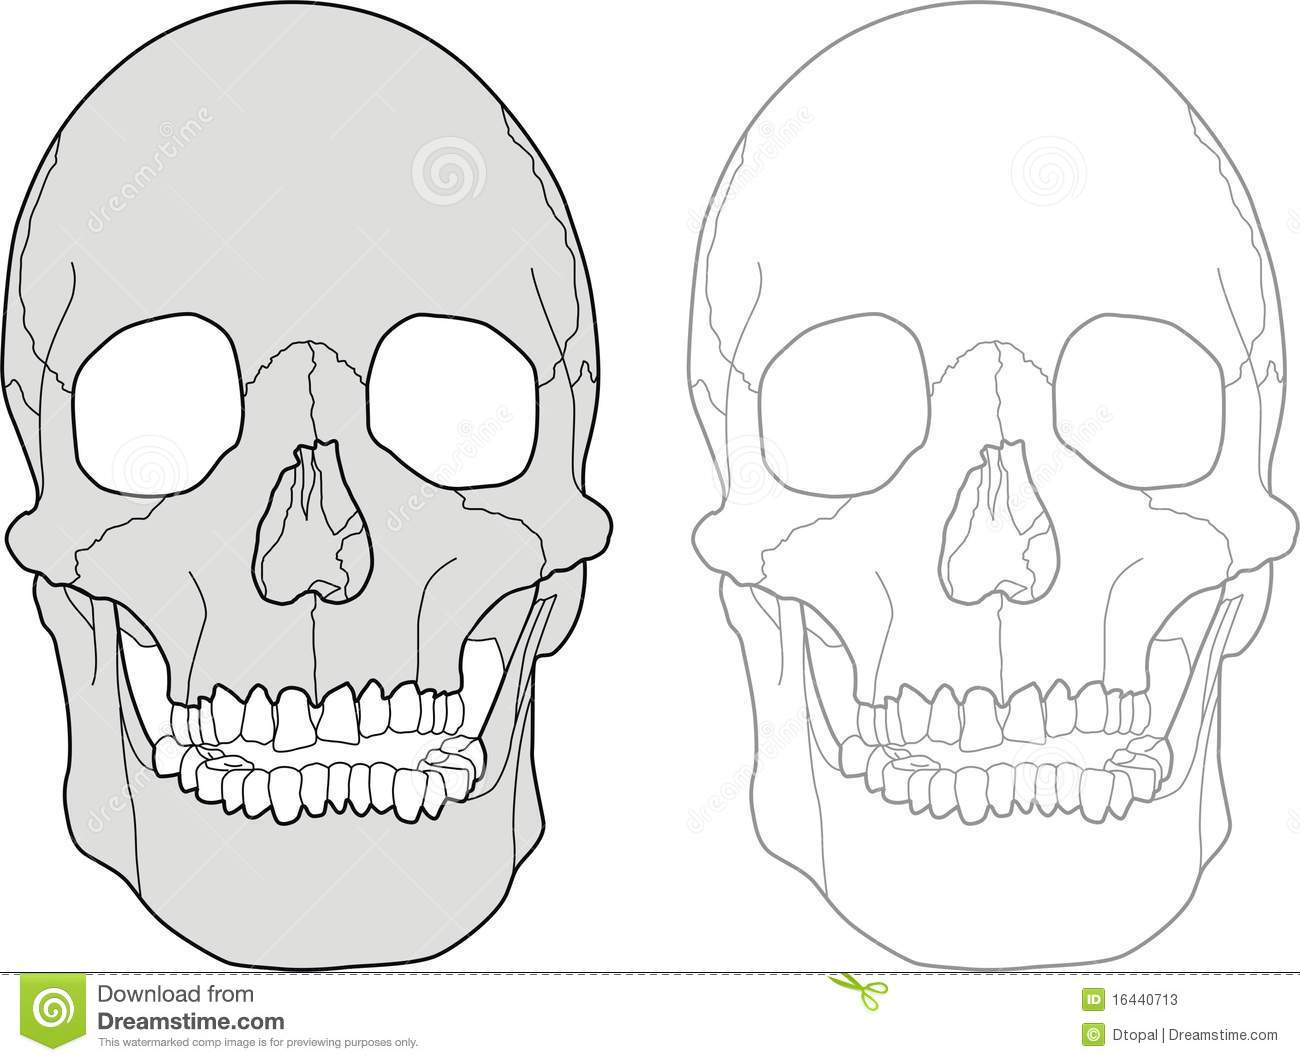 Skull Stock Photos - Image: 16440713 |Skull Outline Drawings